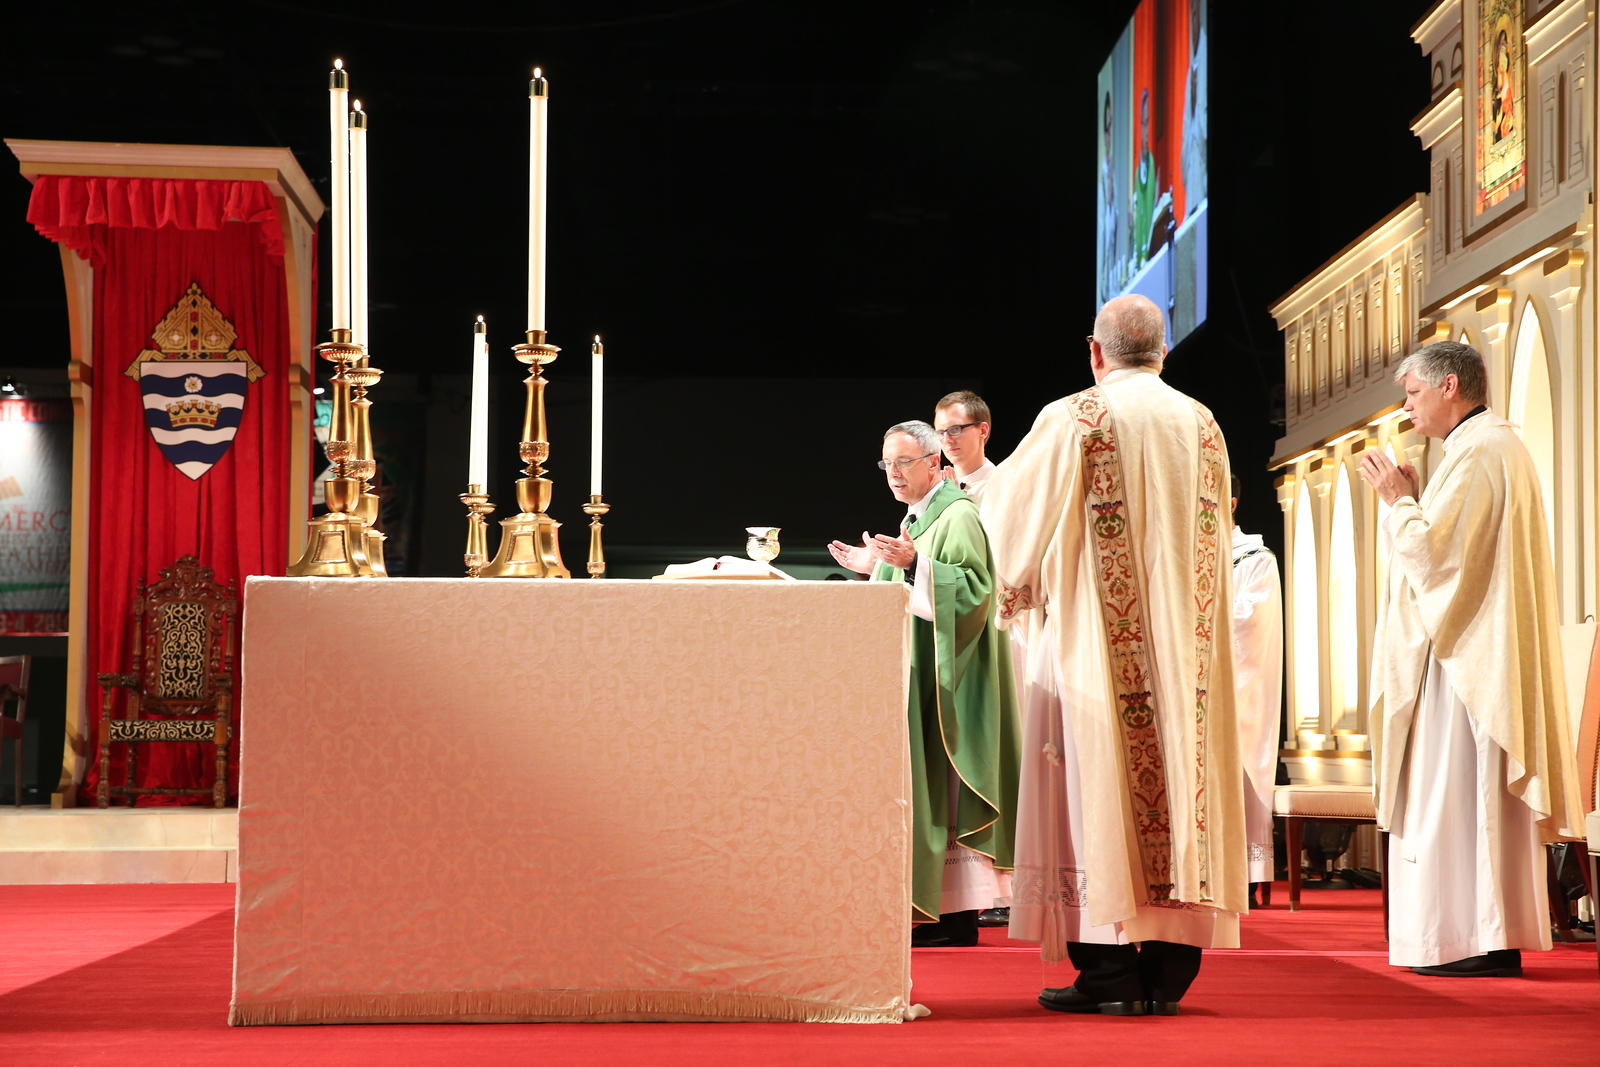 Opening Mass and Healing Service